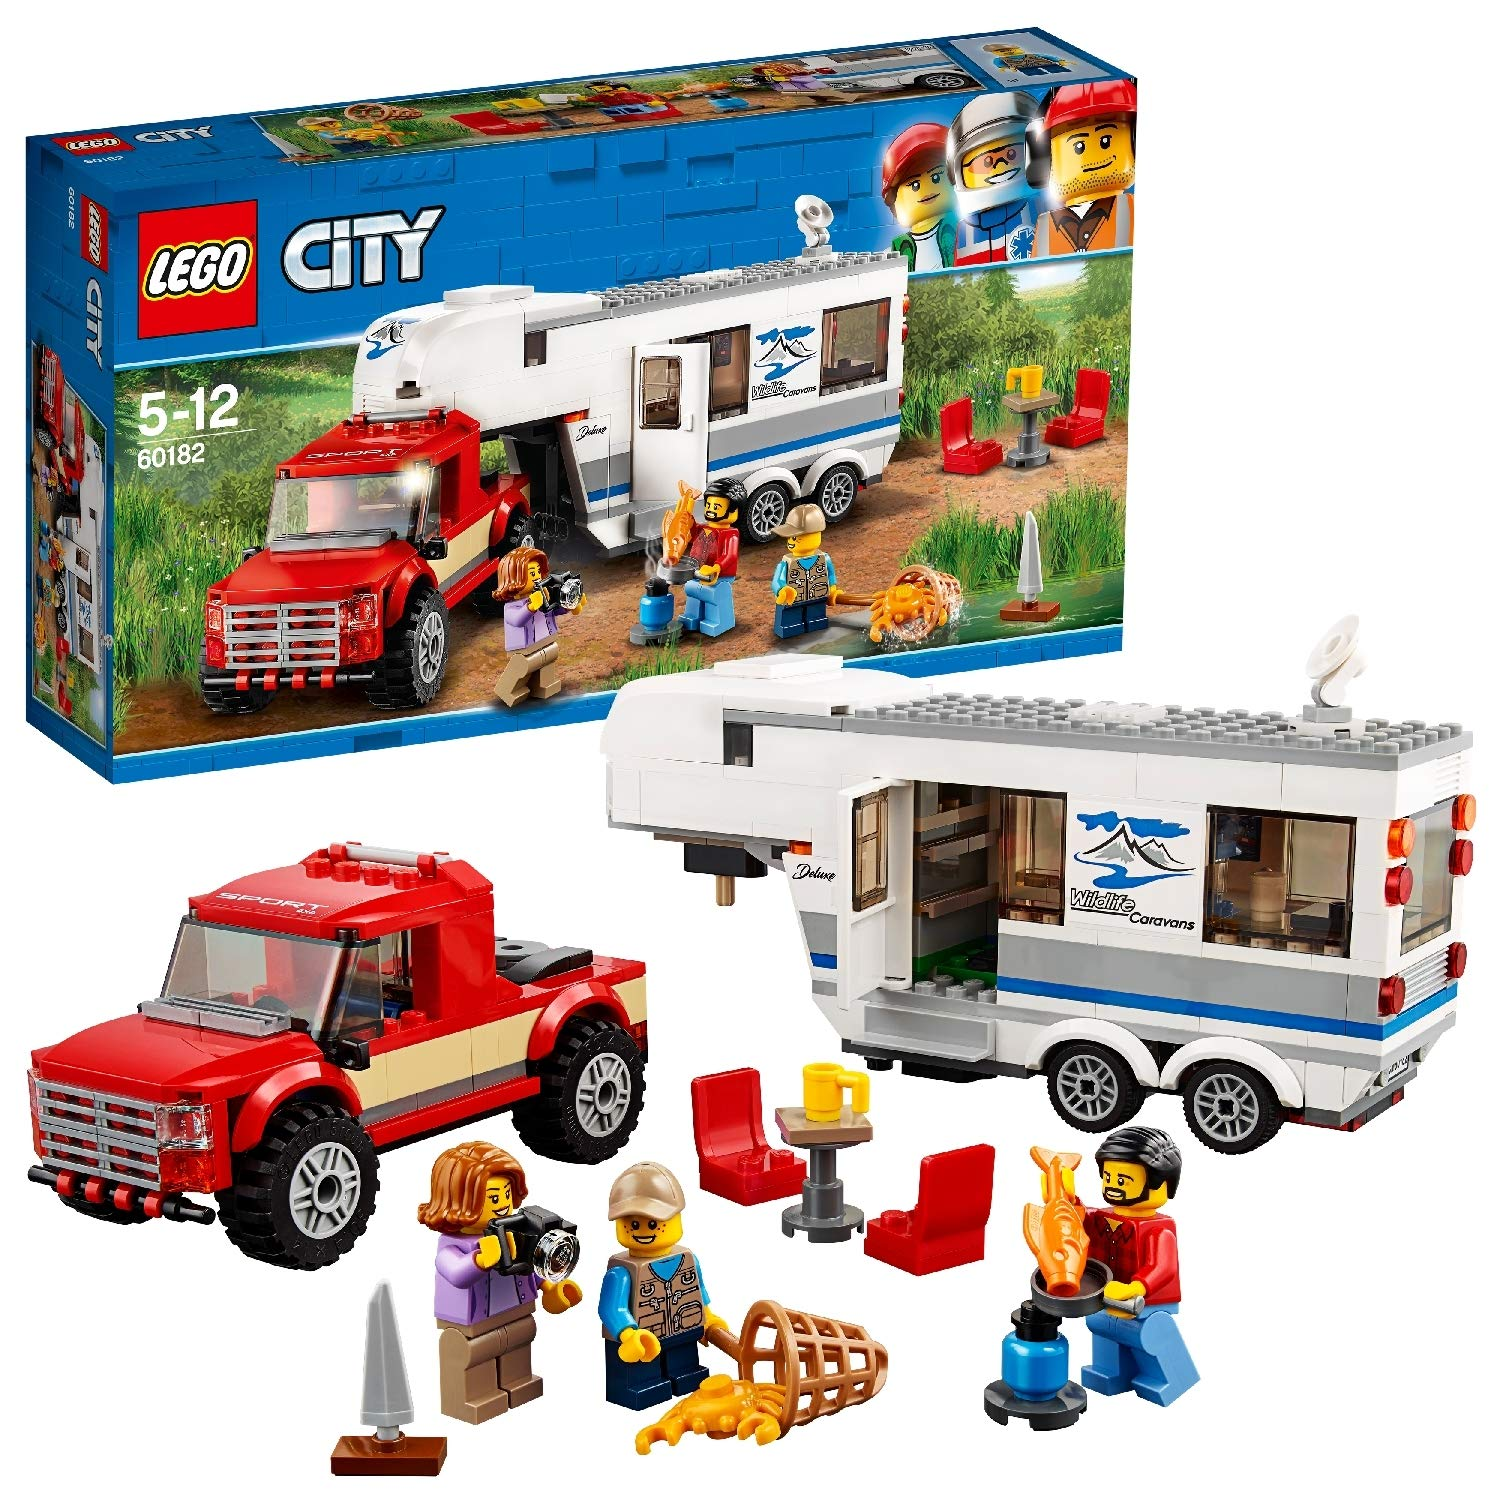 LEGO City Vehicles Pickup and Caravan Truck Toy with 3 Explorer Minifigures, Holiday Sets